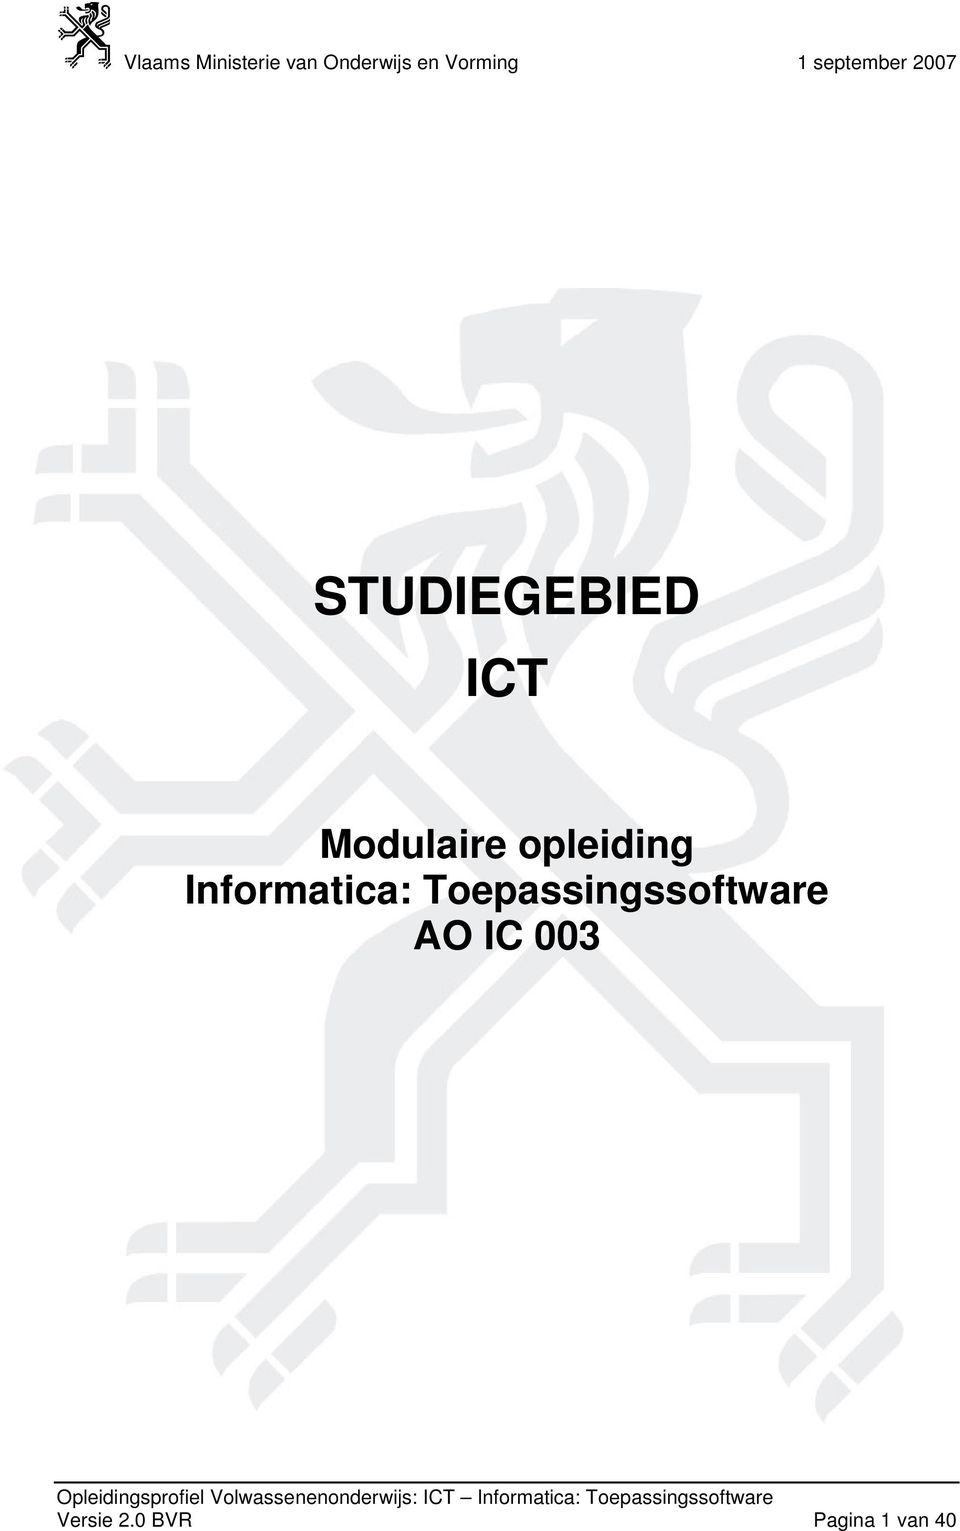 Toepassingssoftware AO IC